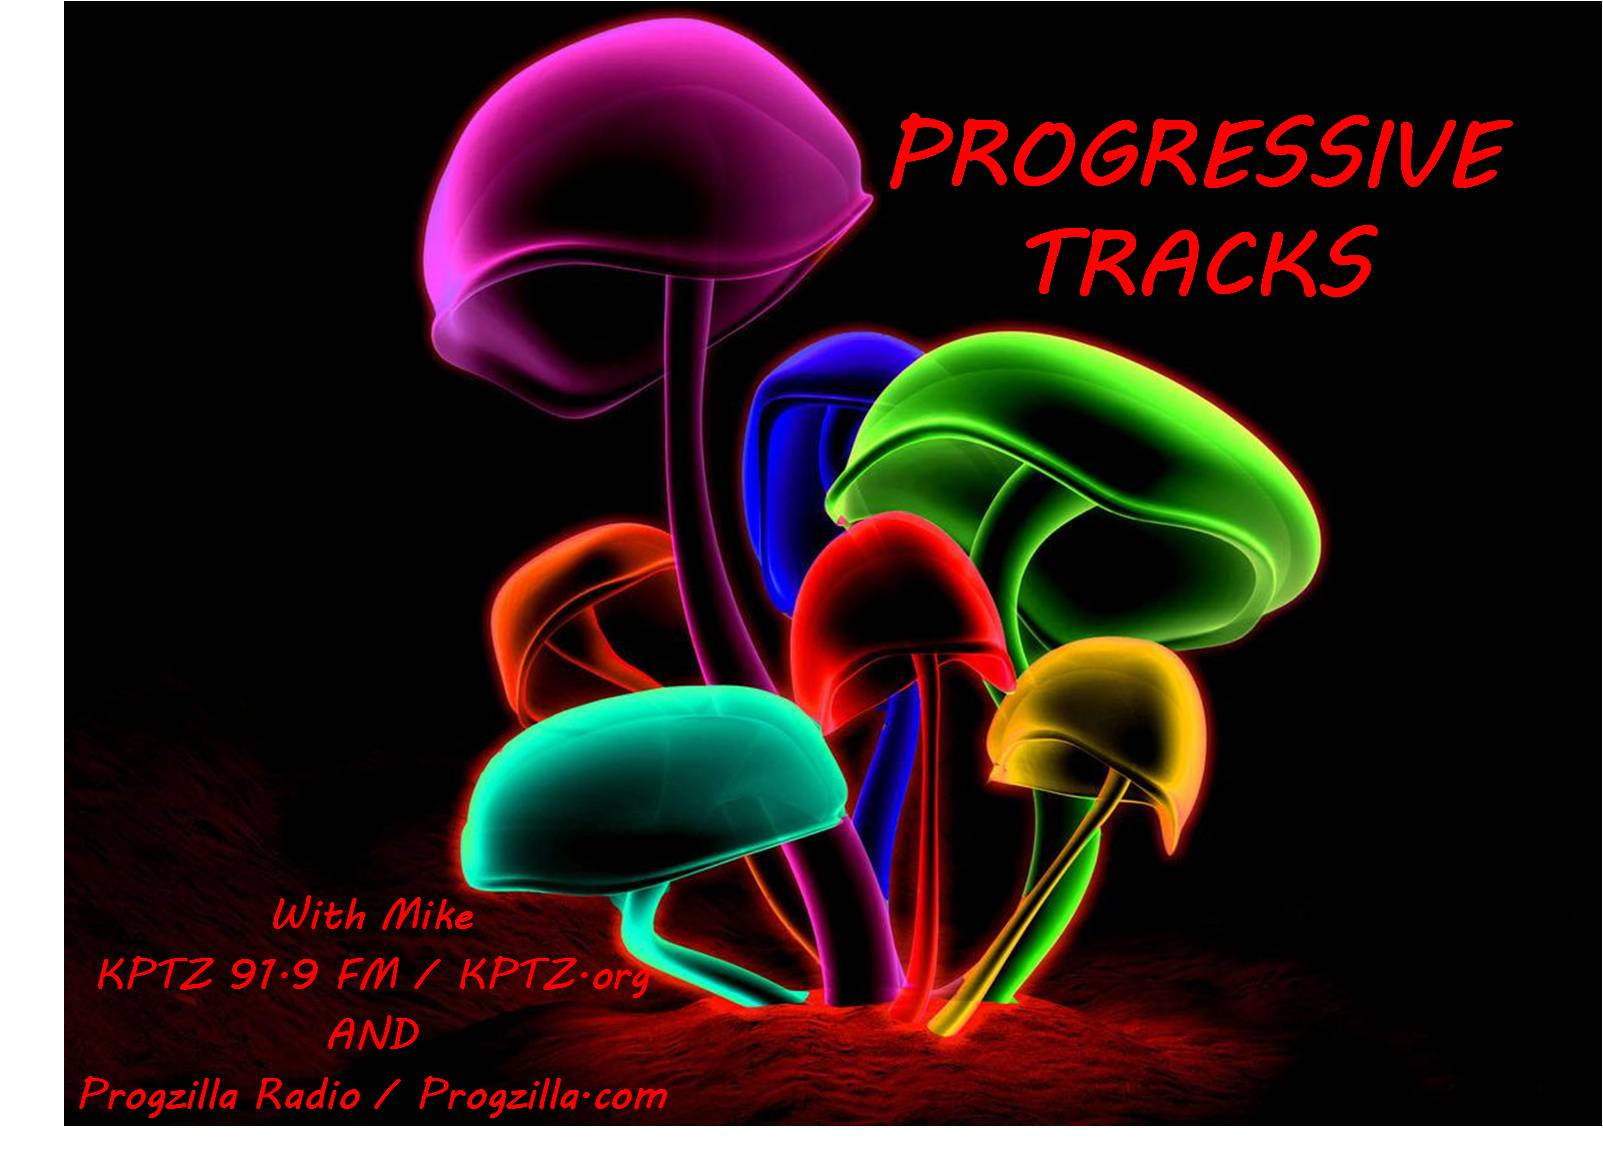 ProgTracks#203 - Music For Your Head